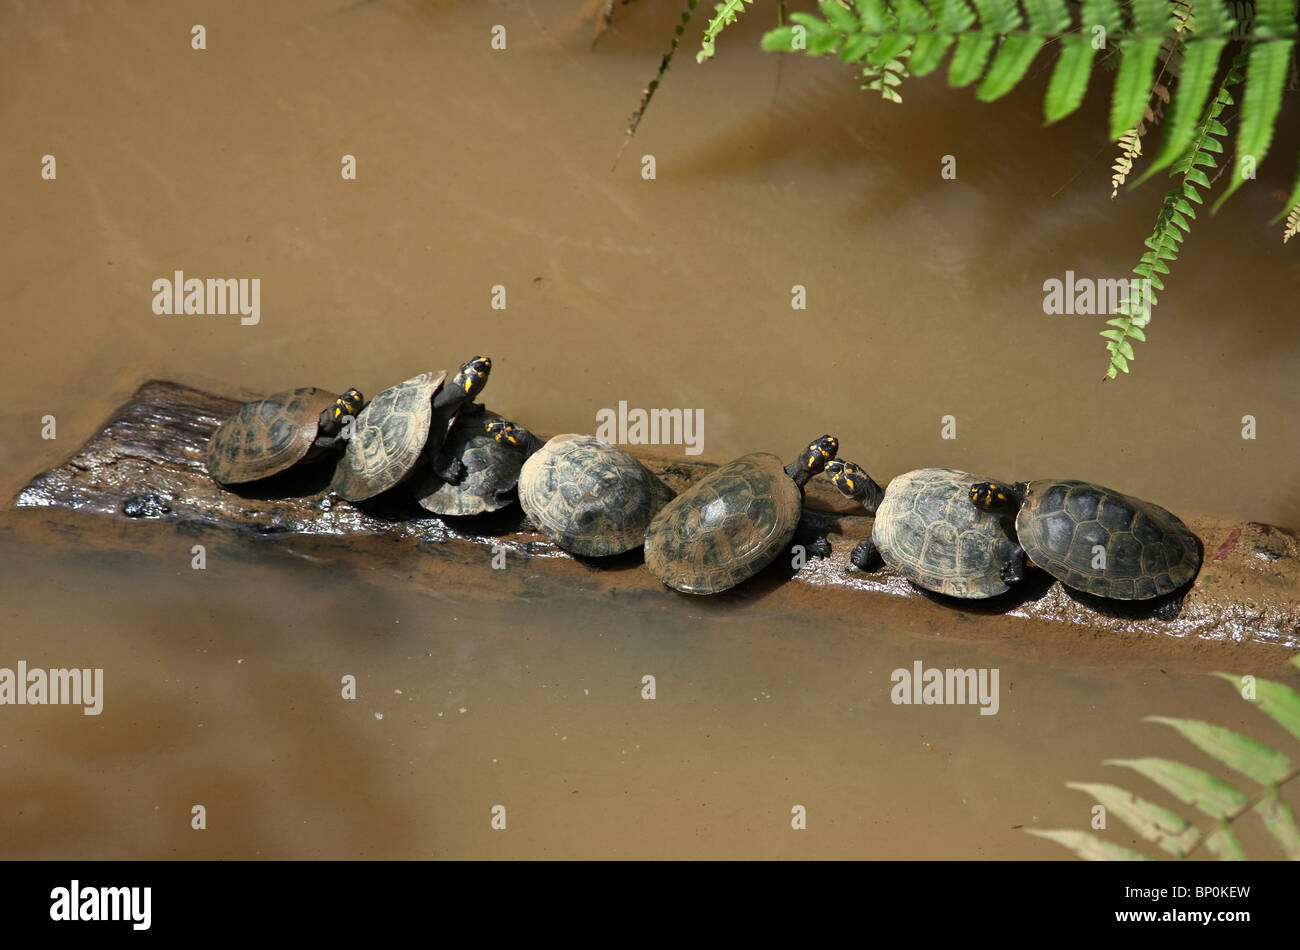 Peru. Freshwater turtles bask on a log in the Madre de Dios River at Puerto Maldonado. - Stock Image